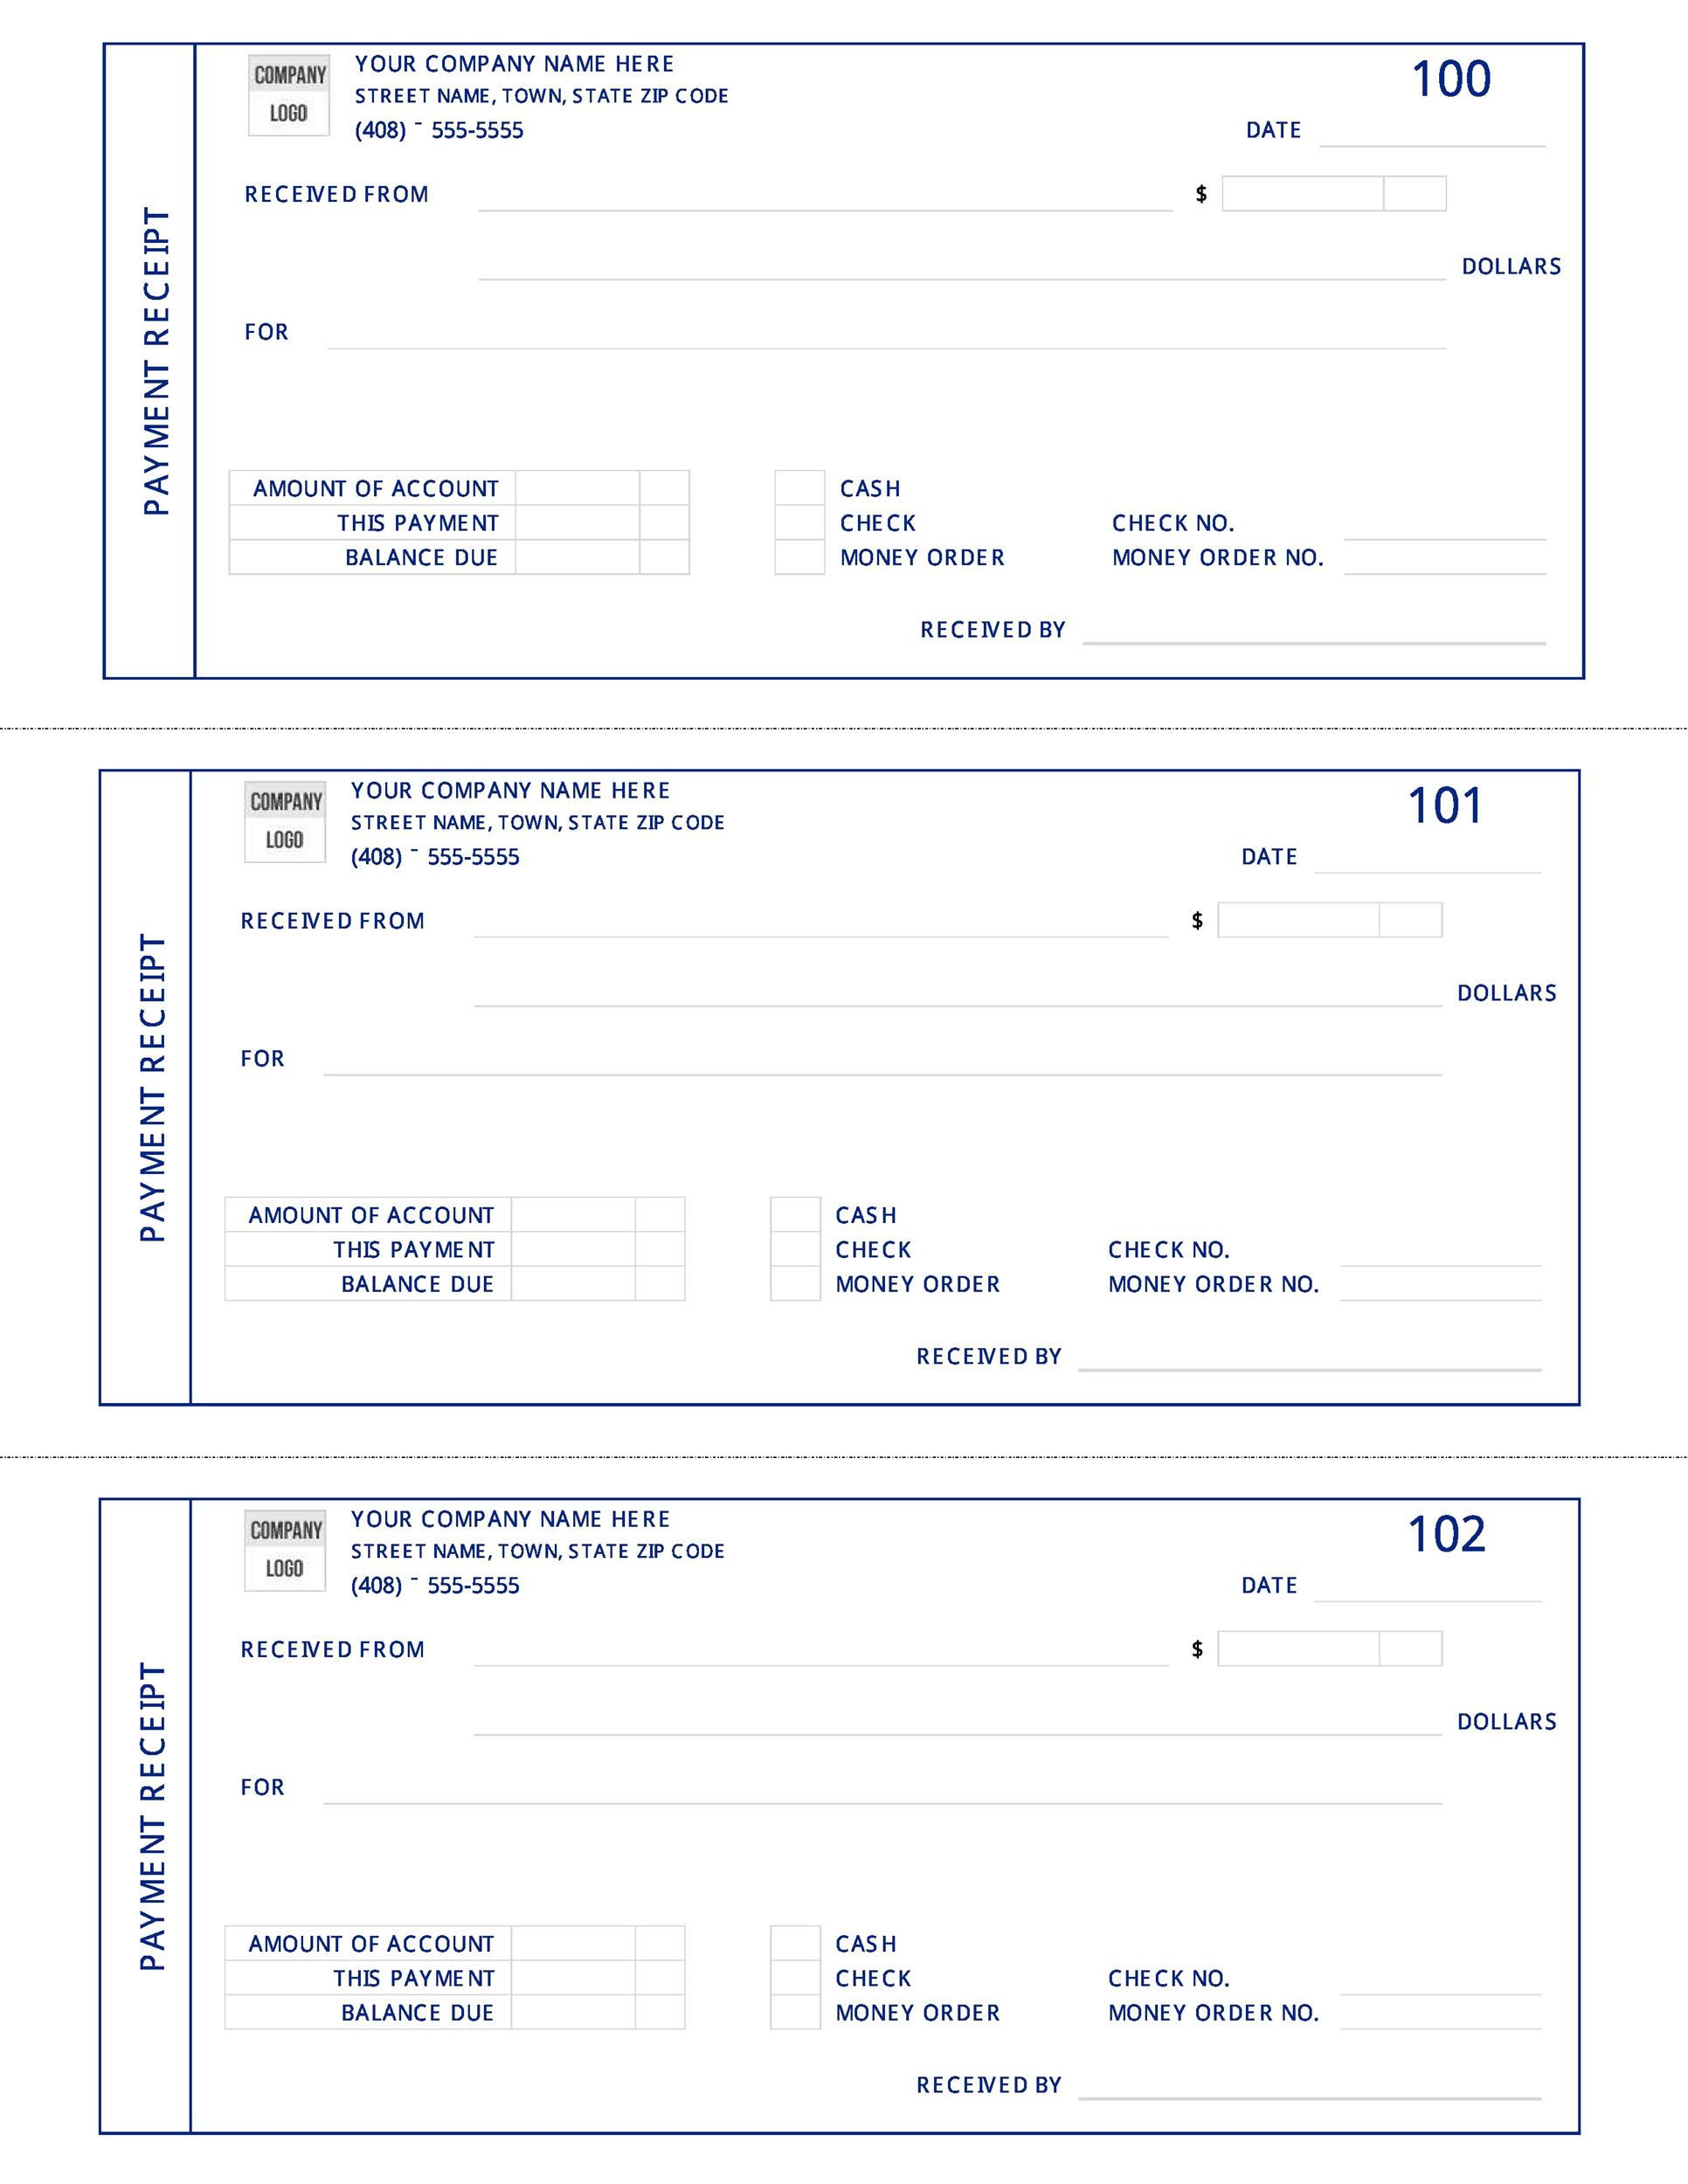 50 Free Receipt Templates Cash Sales Donation Taxi – Template for Receipt of Payment